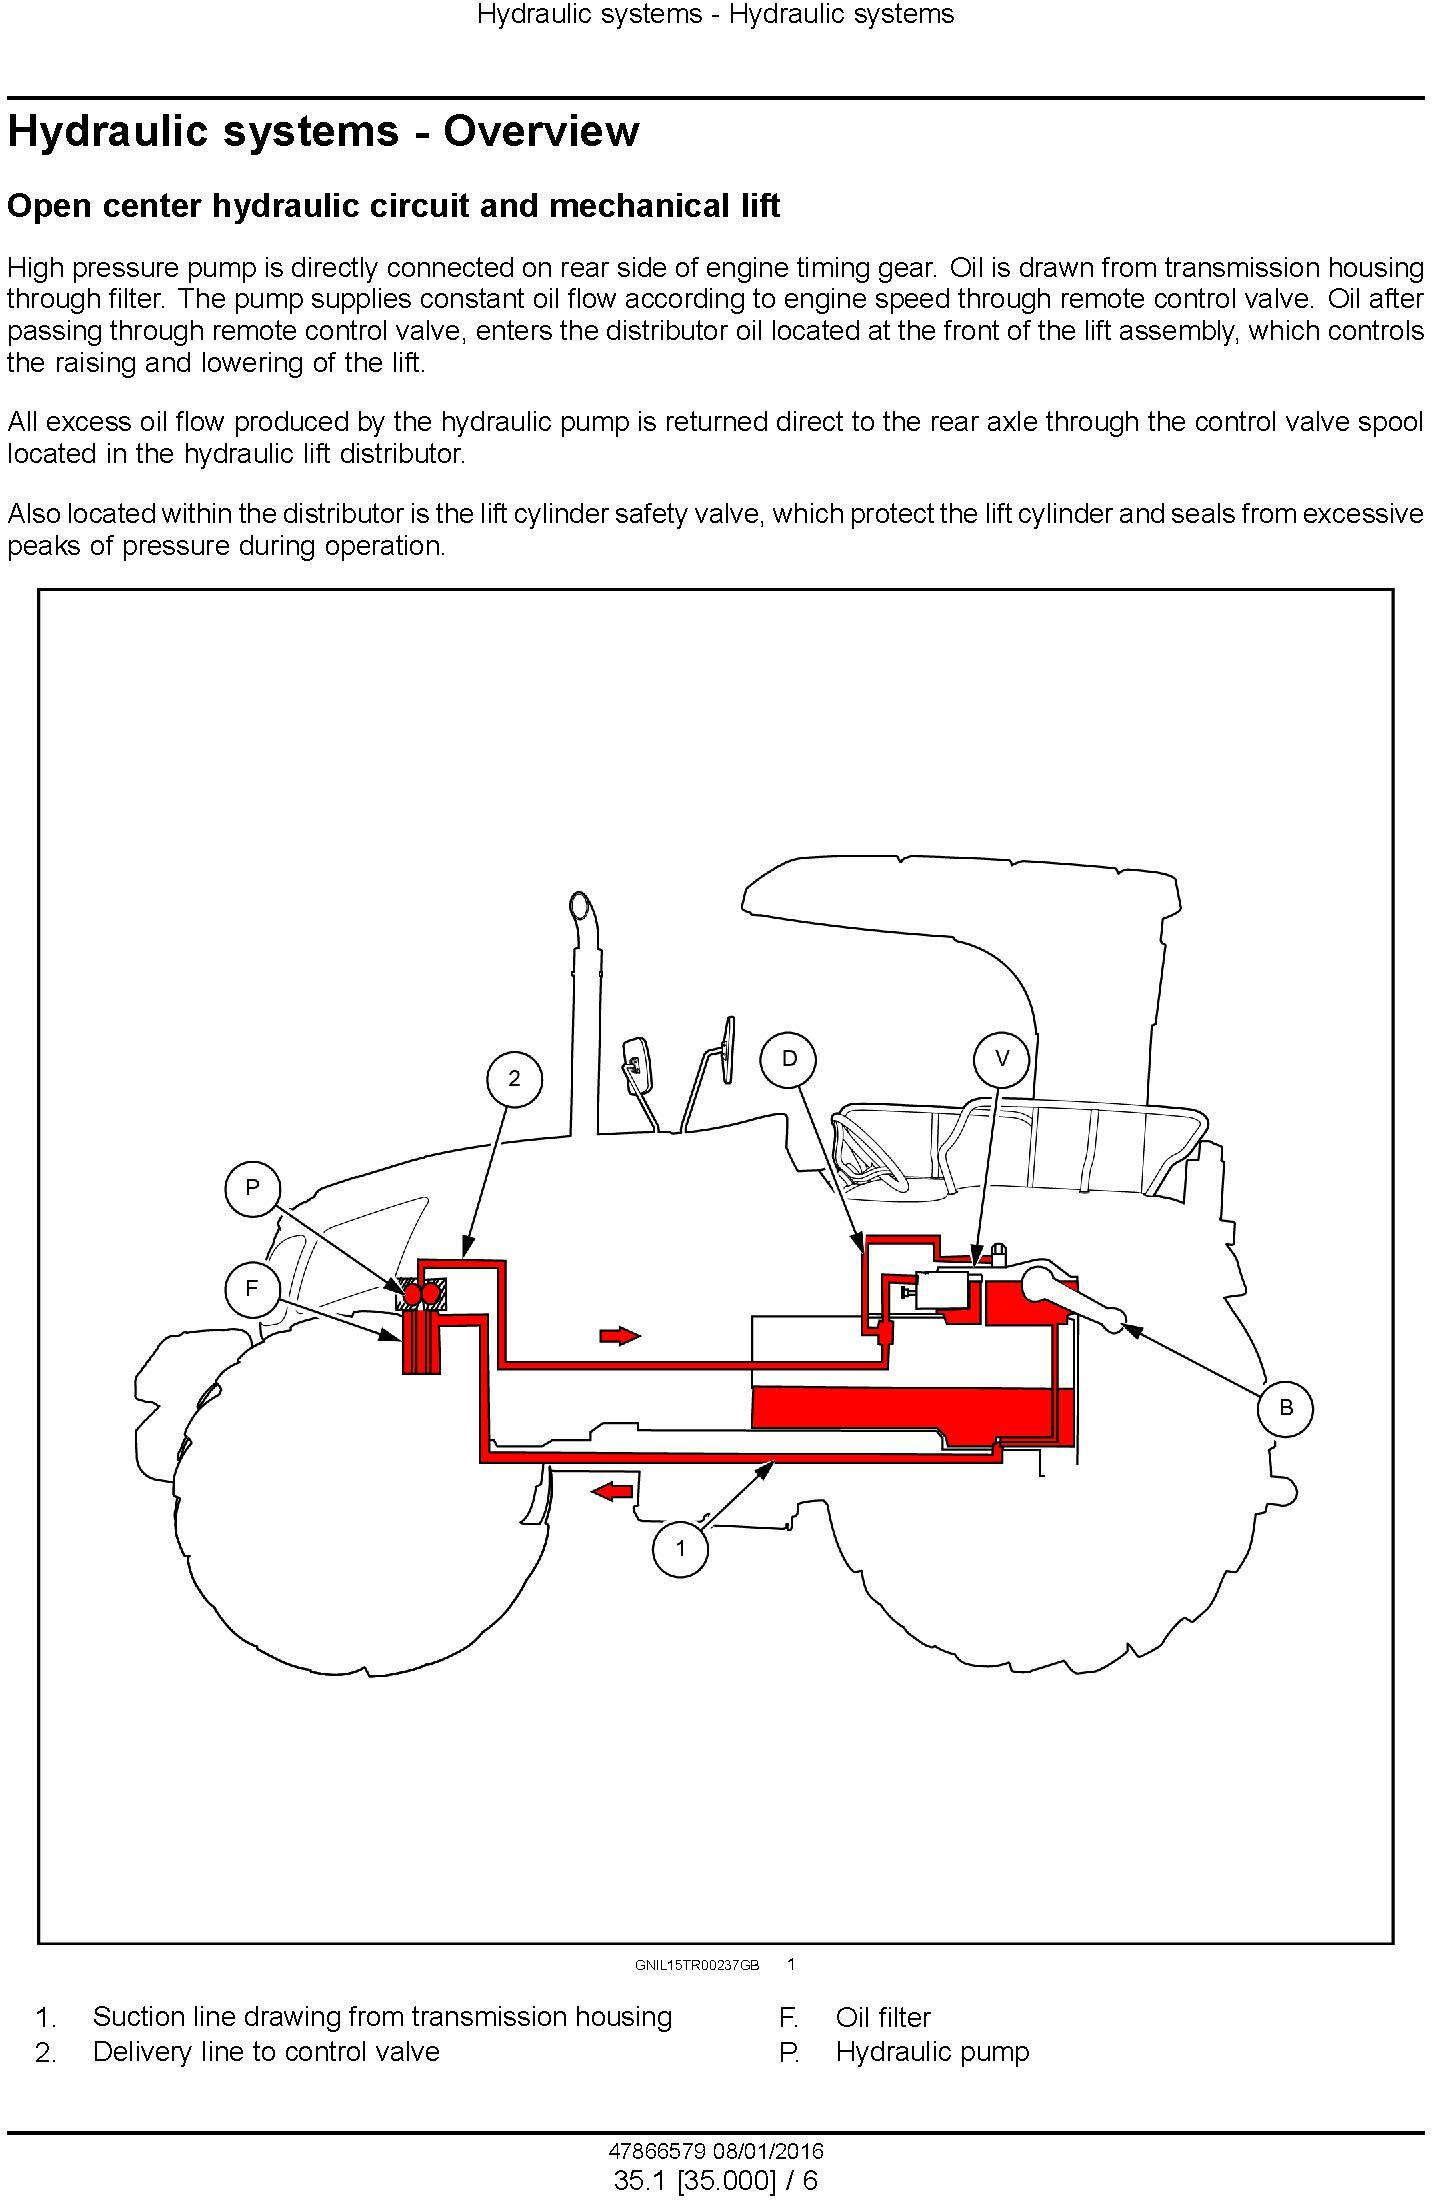 New Holland 8010, 9010 Tractor Service Manual - 2